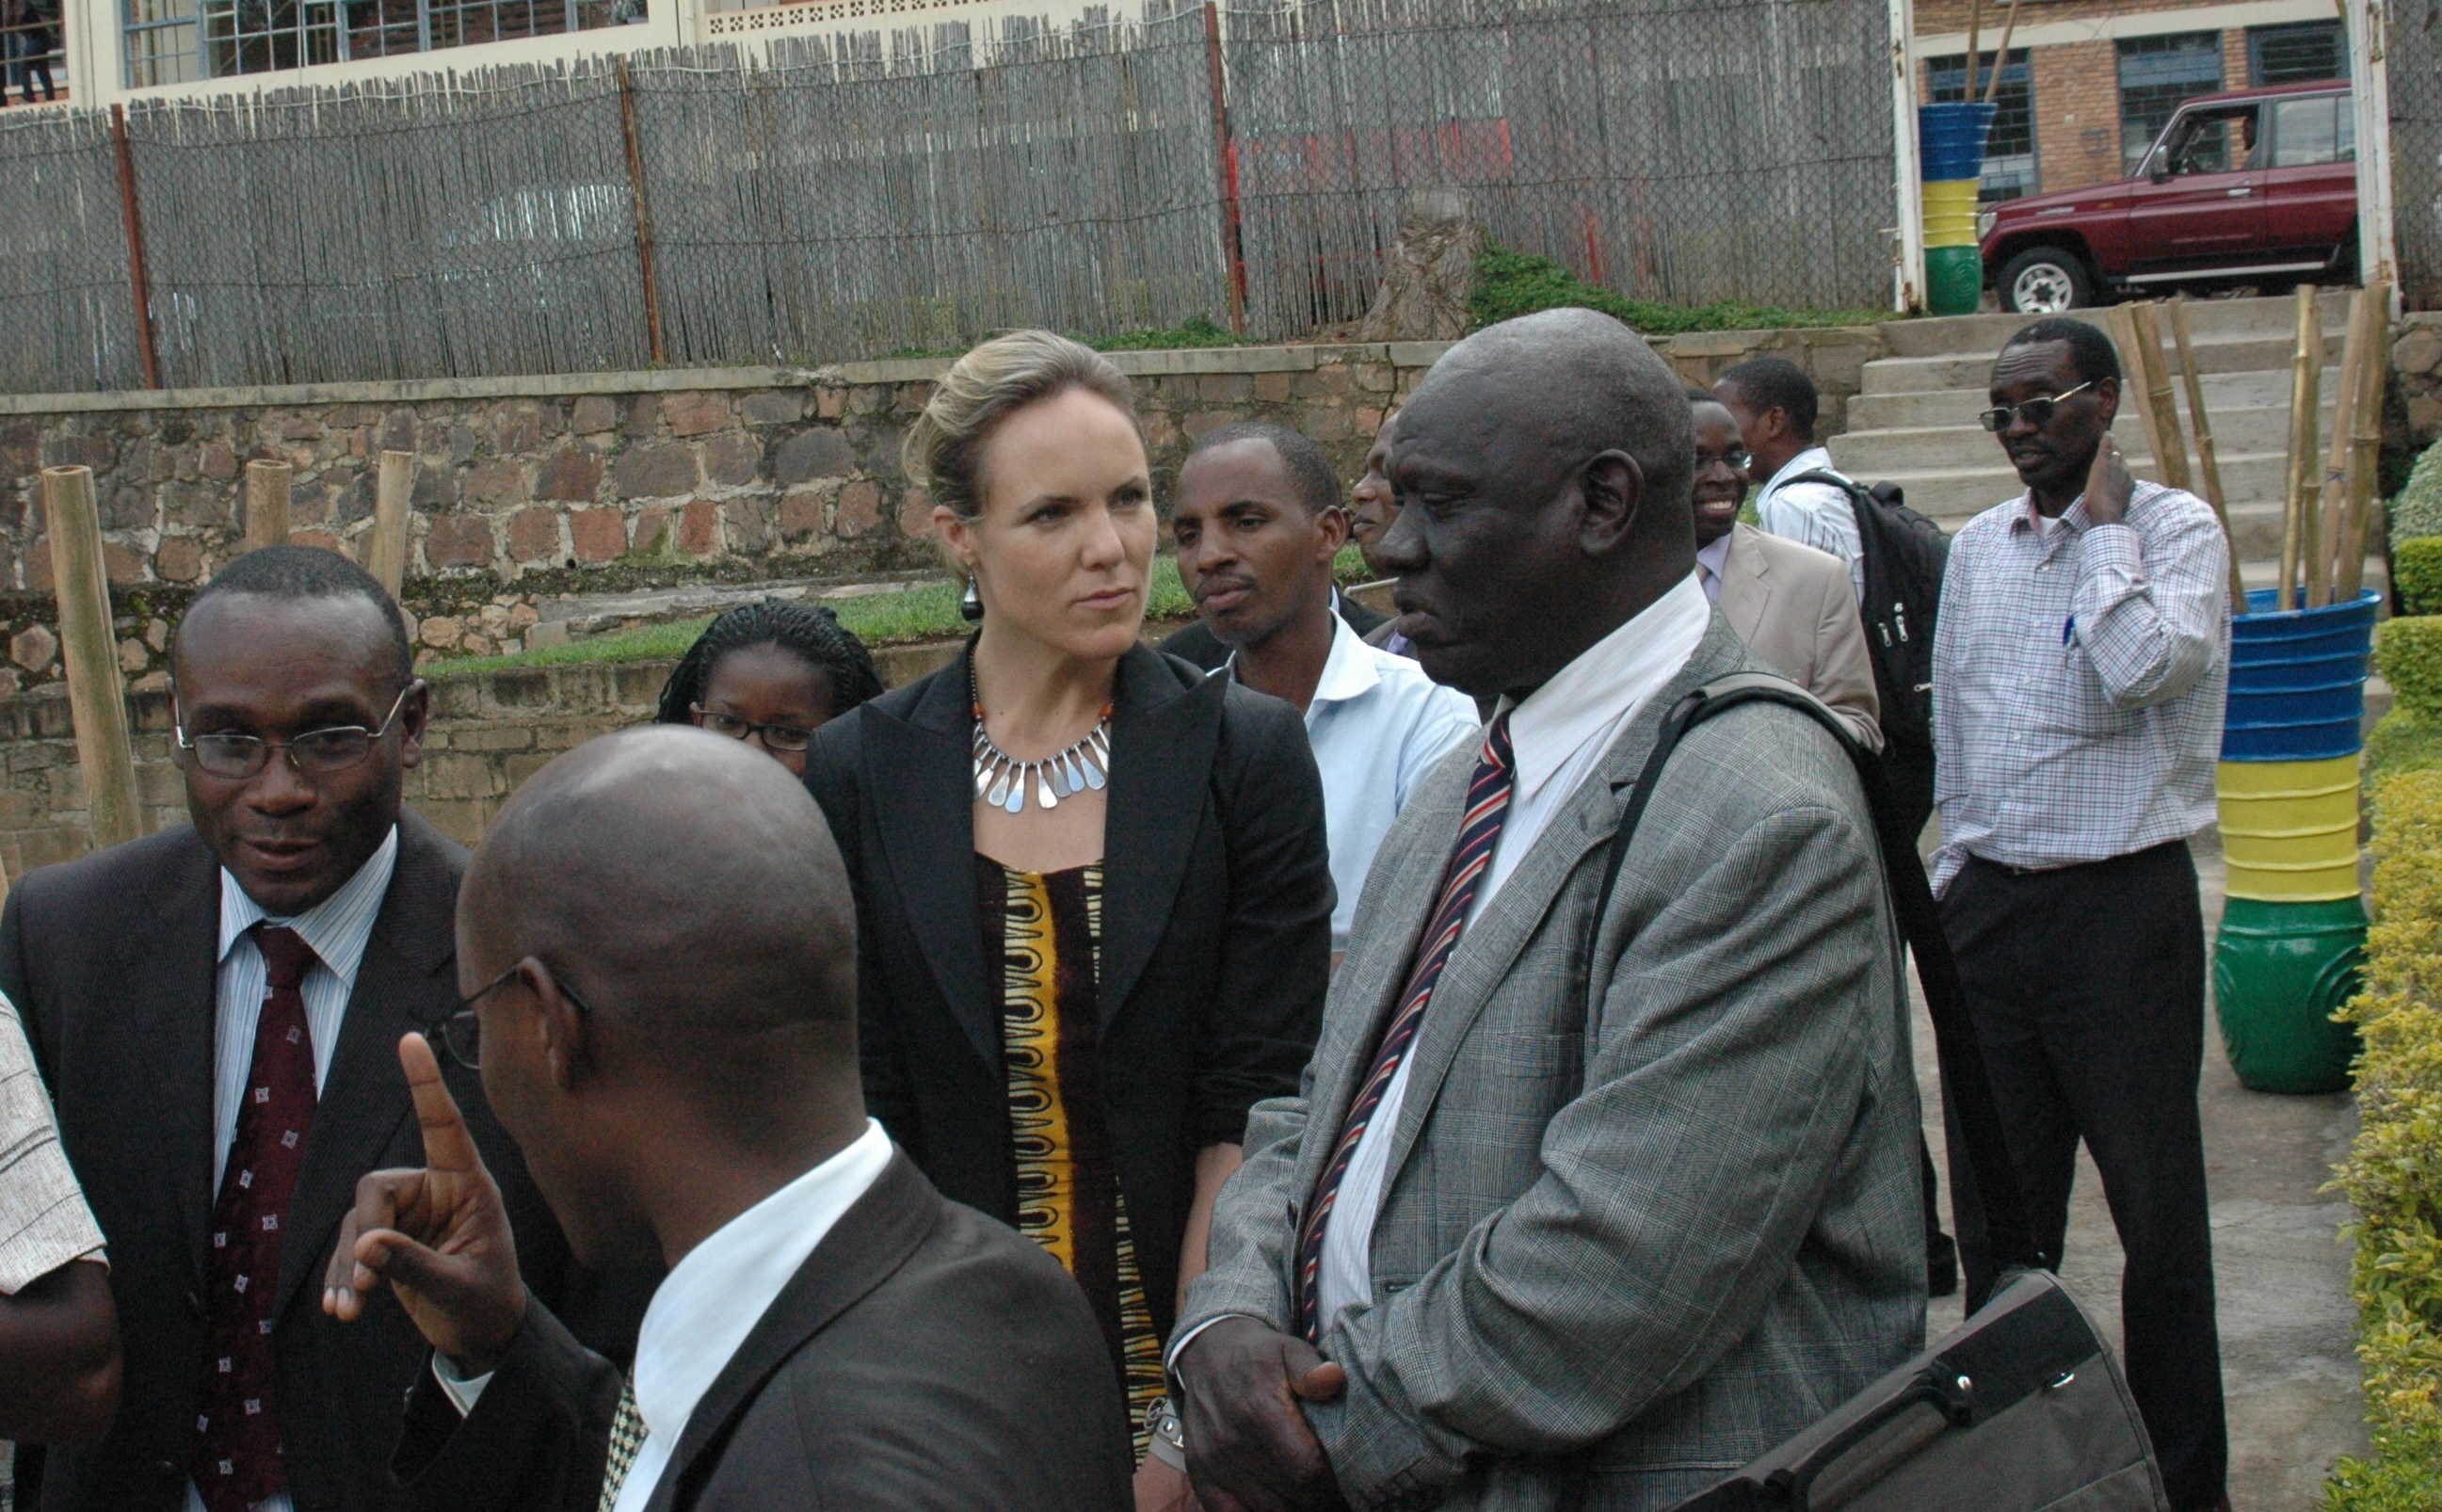 GKI's Sara Farley with Uganda National Council for Science and Technology's Dr. Peter Ndemere (left) and Kenya National Council for Science and Technology's M.K. Rugut (Right)